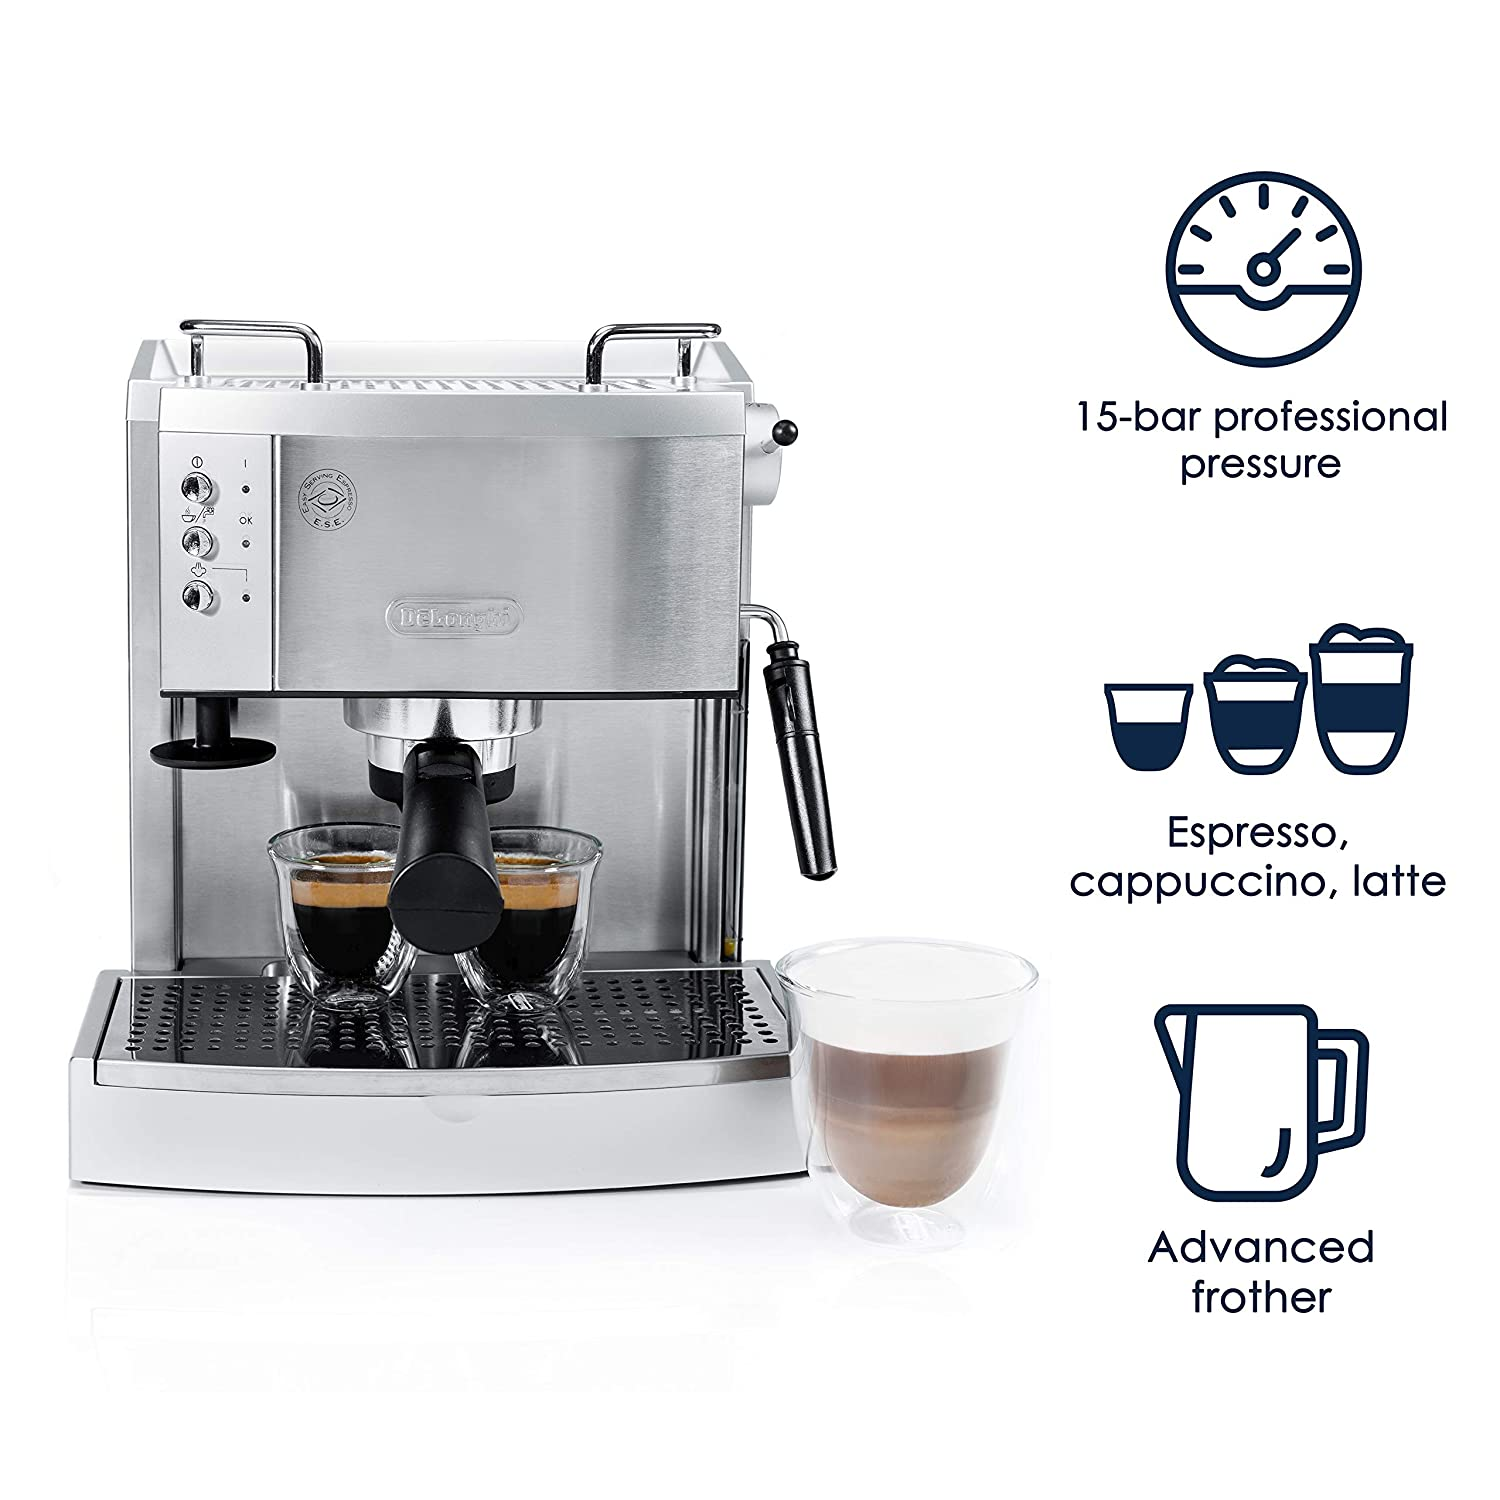 DeLonghi EC702 Espresso Maker Review 2020